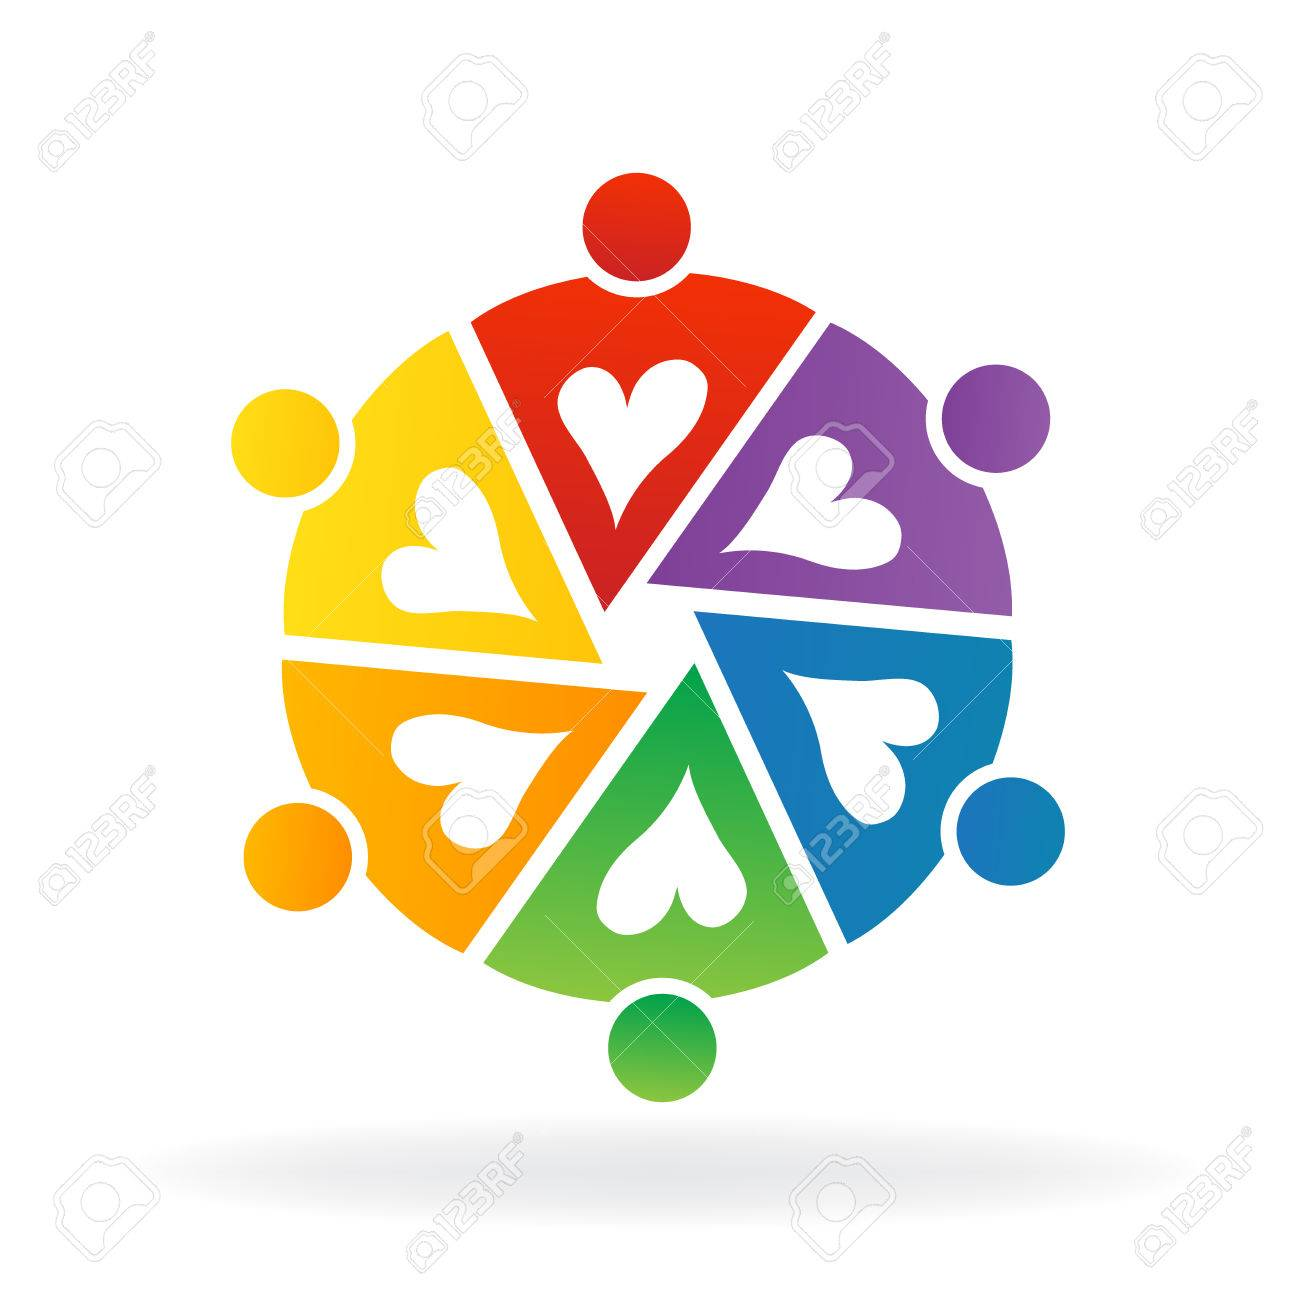 Logo Teamwork Colorful People Working Together With Love Royalty